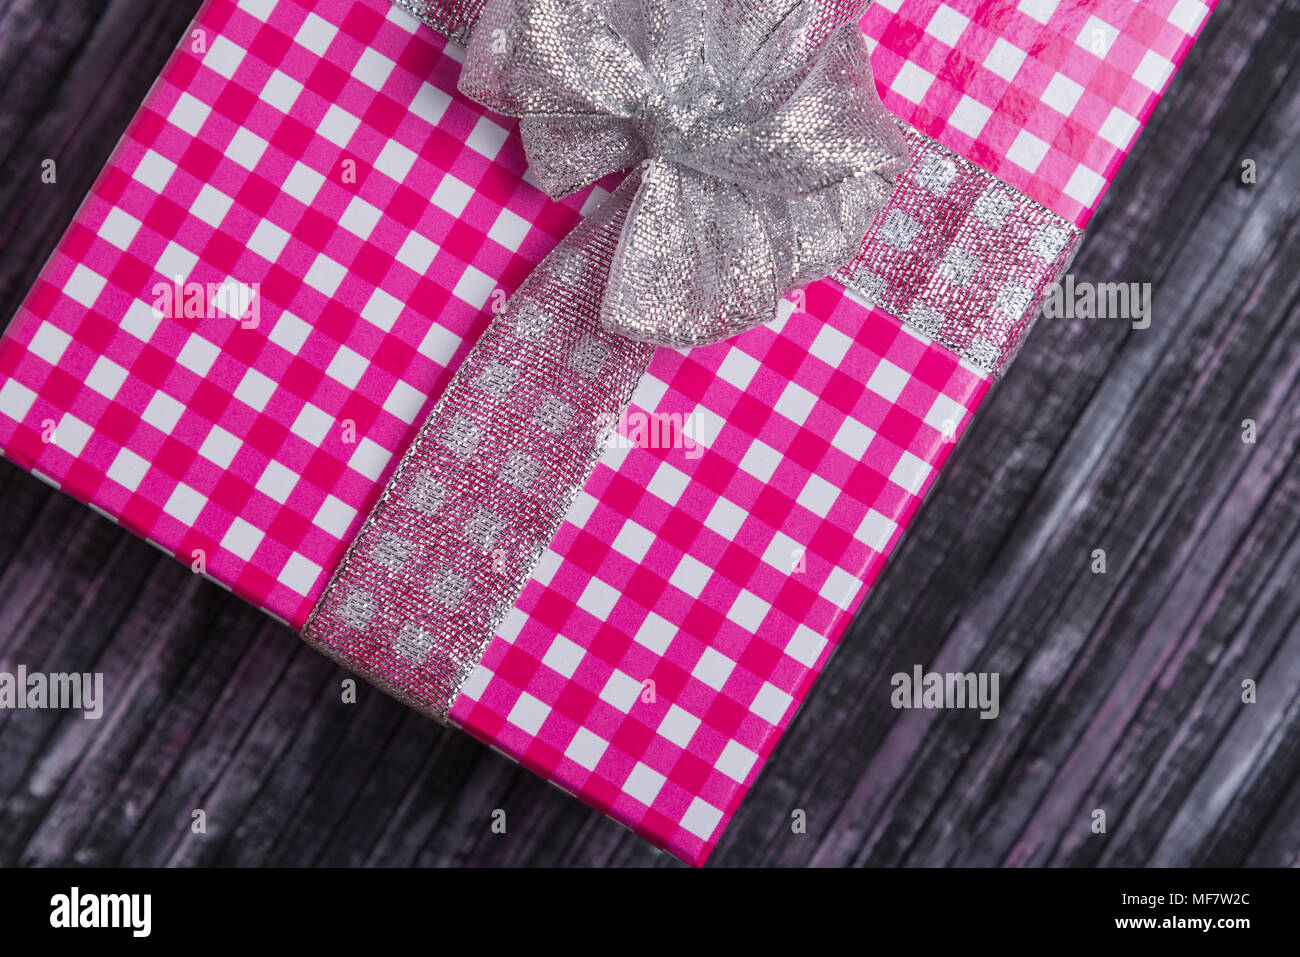 a gift for my wife and loved one a gift for the new year and christmas wooden background